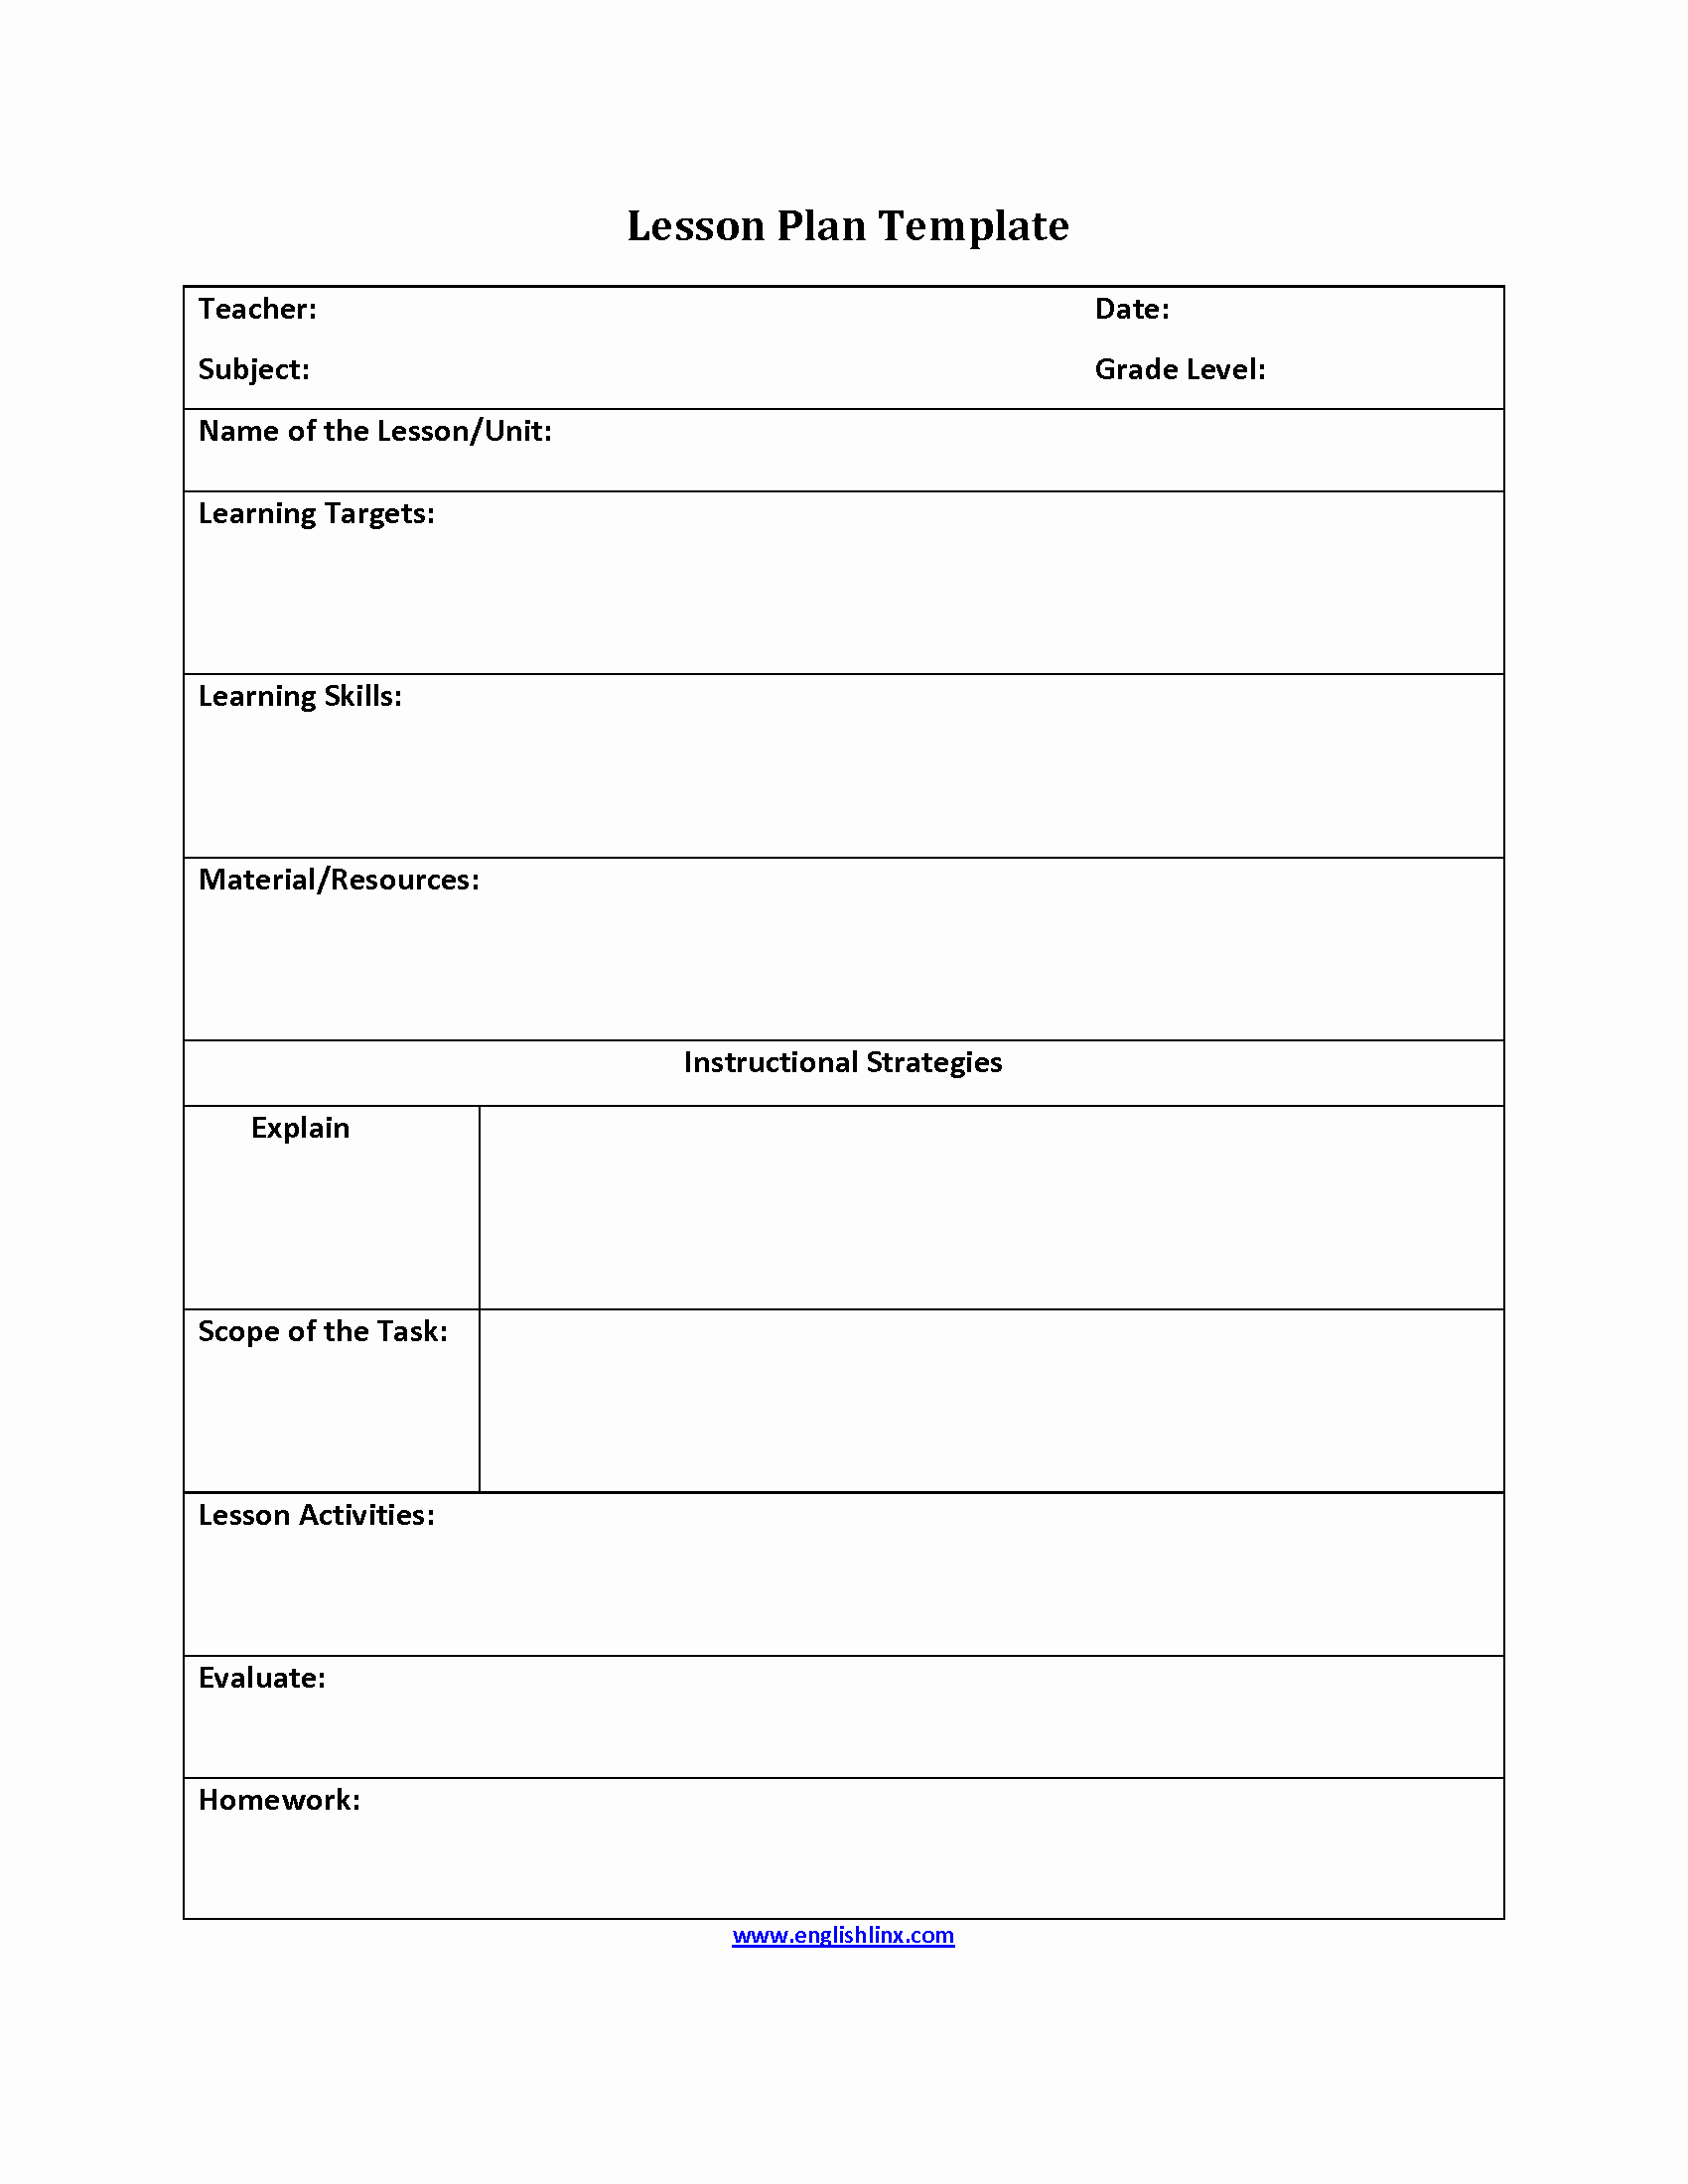 Elementary Math Lesson Plan Template Lovely What is Lesson Plan Template